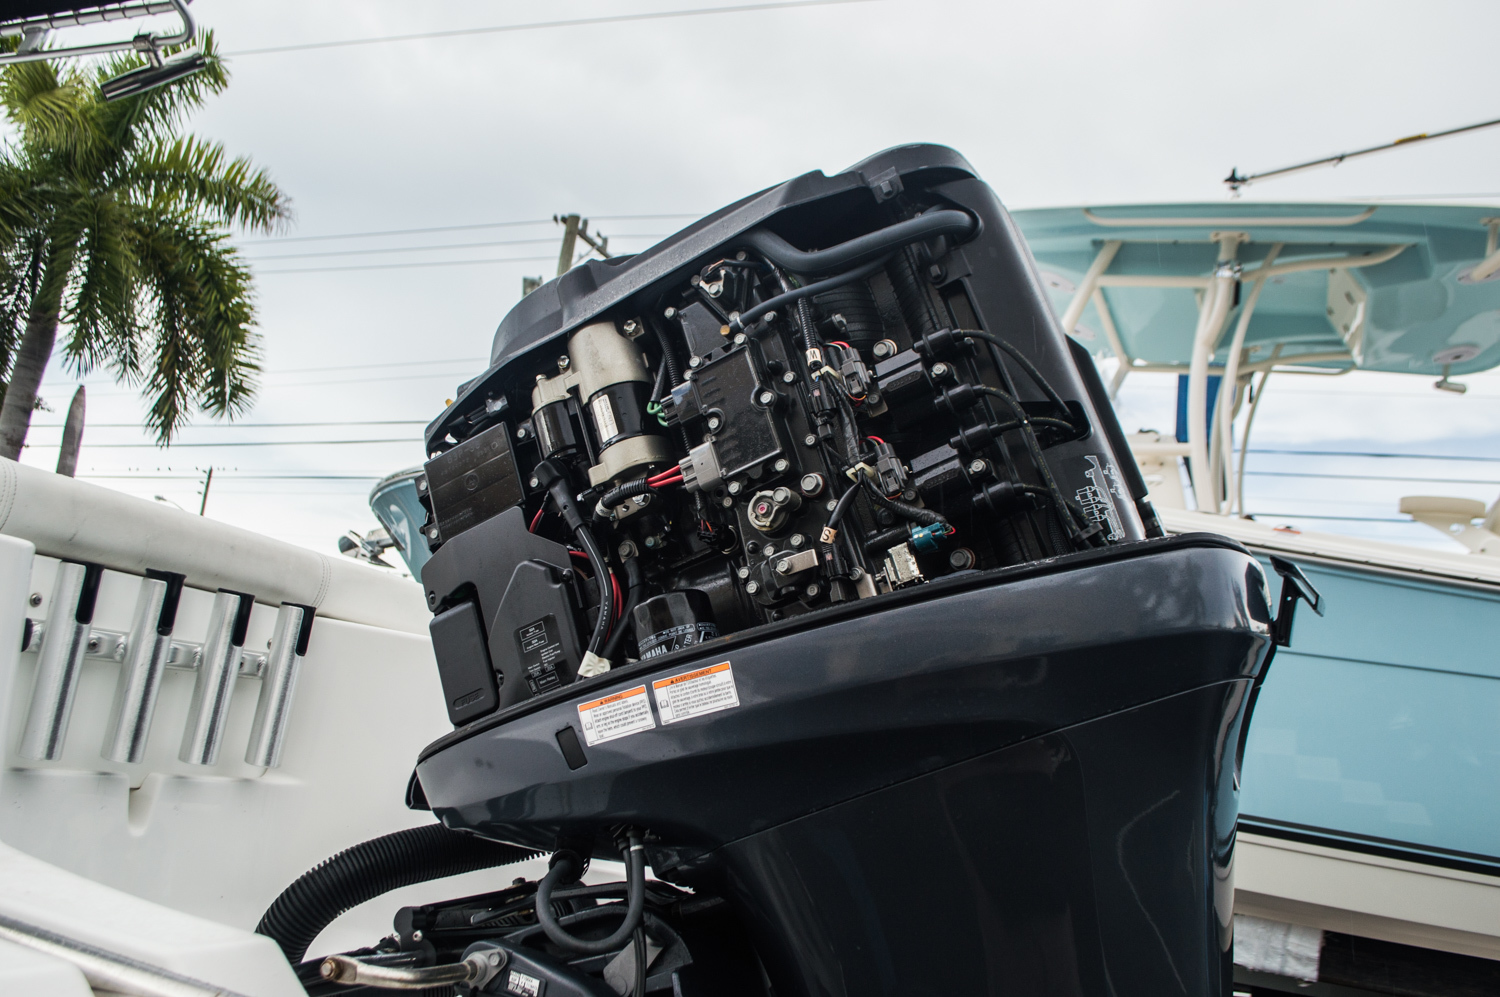 Thumbnail 41 for Used 2012 Sea Hunt 211 Ultra boat for sale in West Palm Beach, FL